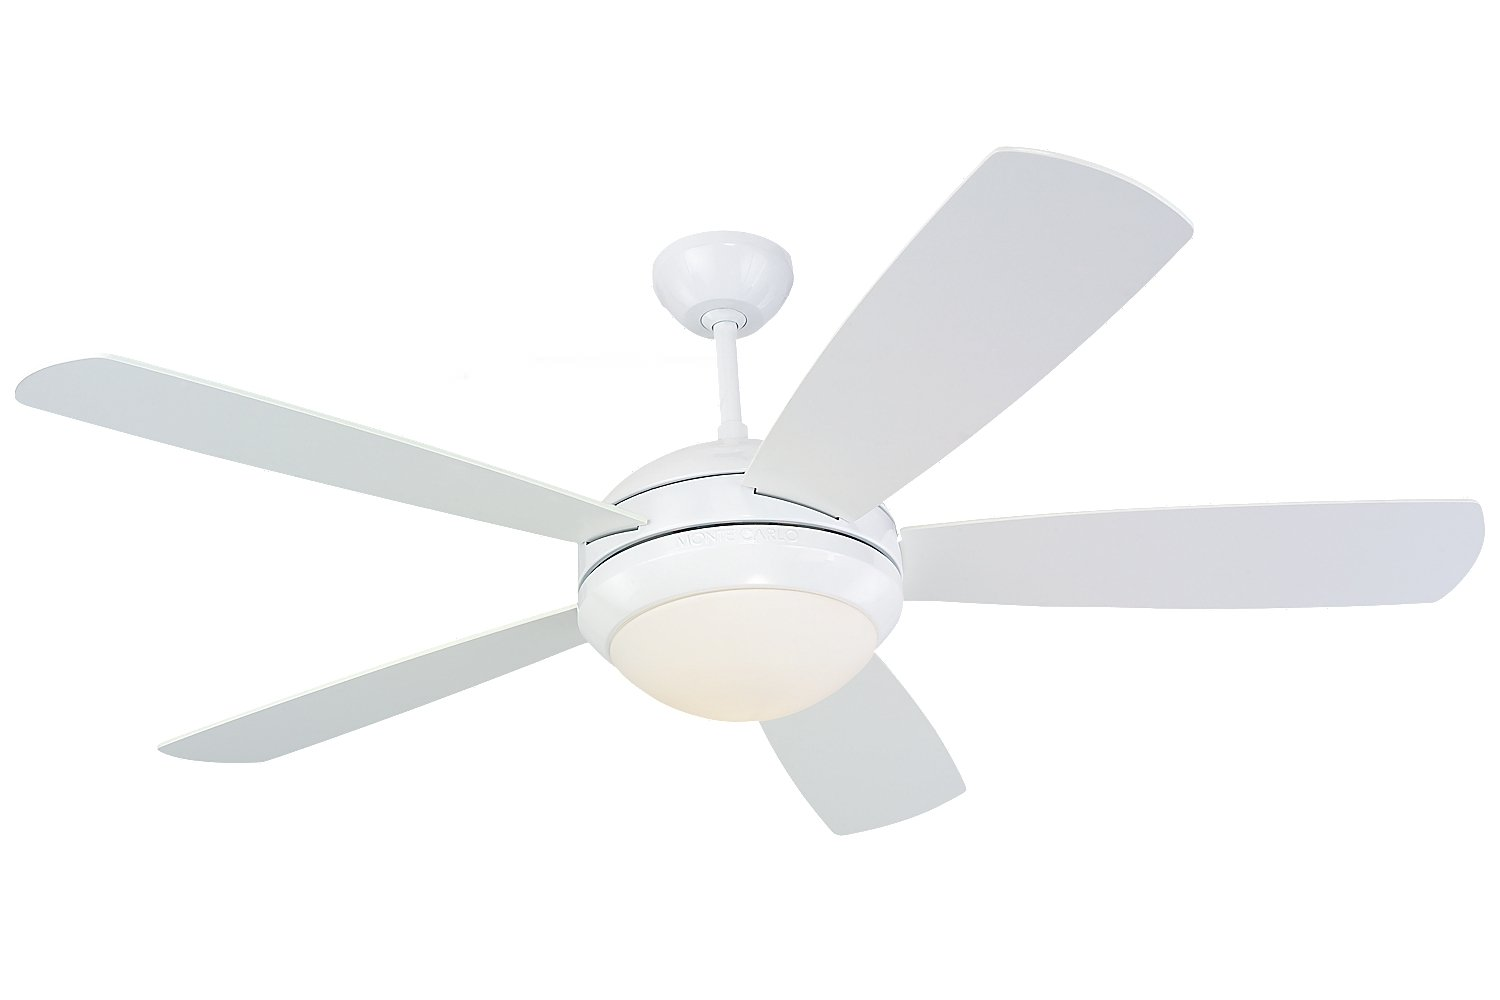 Best ceiling fans reviews buying guide and comparison 2018 monte carlo 5di52whd l discus best indoor fan mozeypictures Choice Image